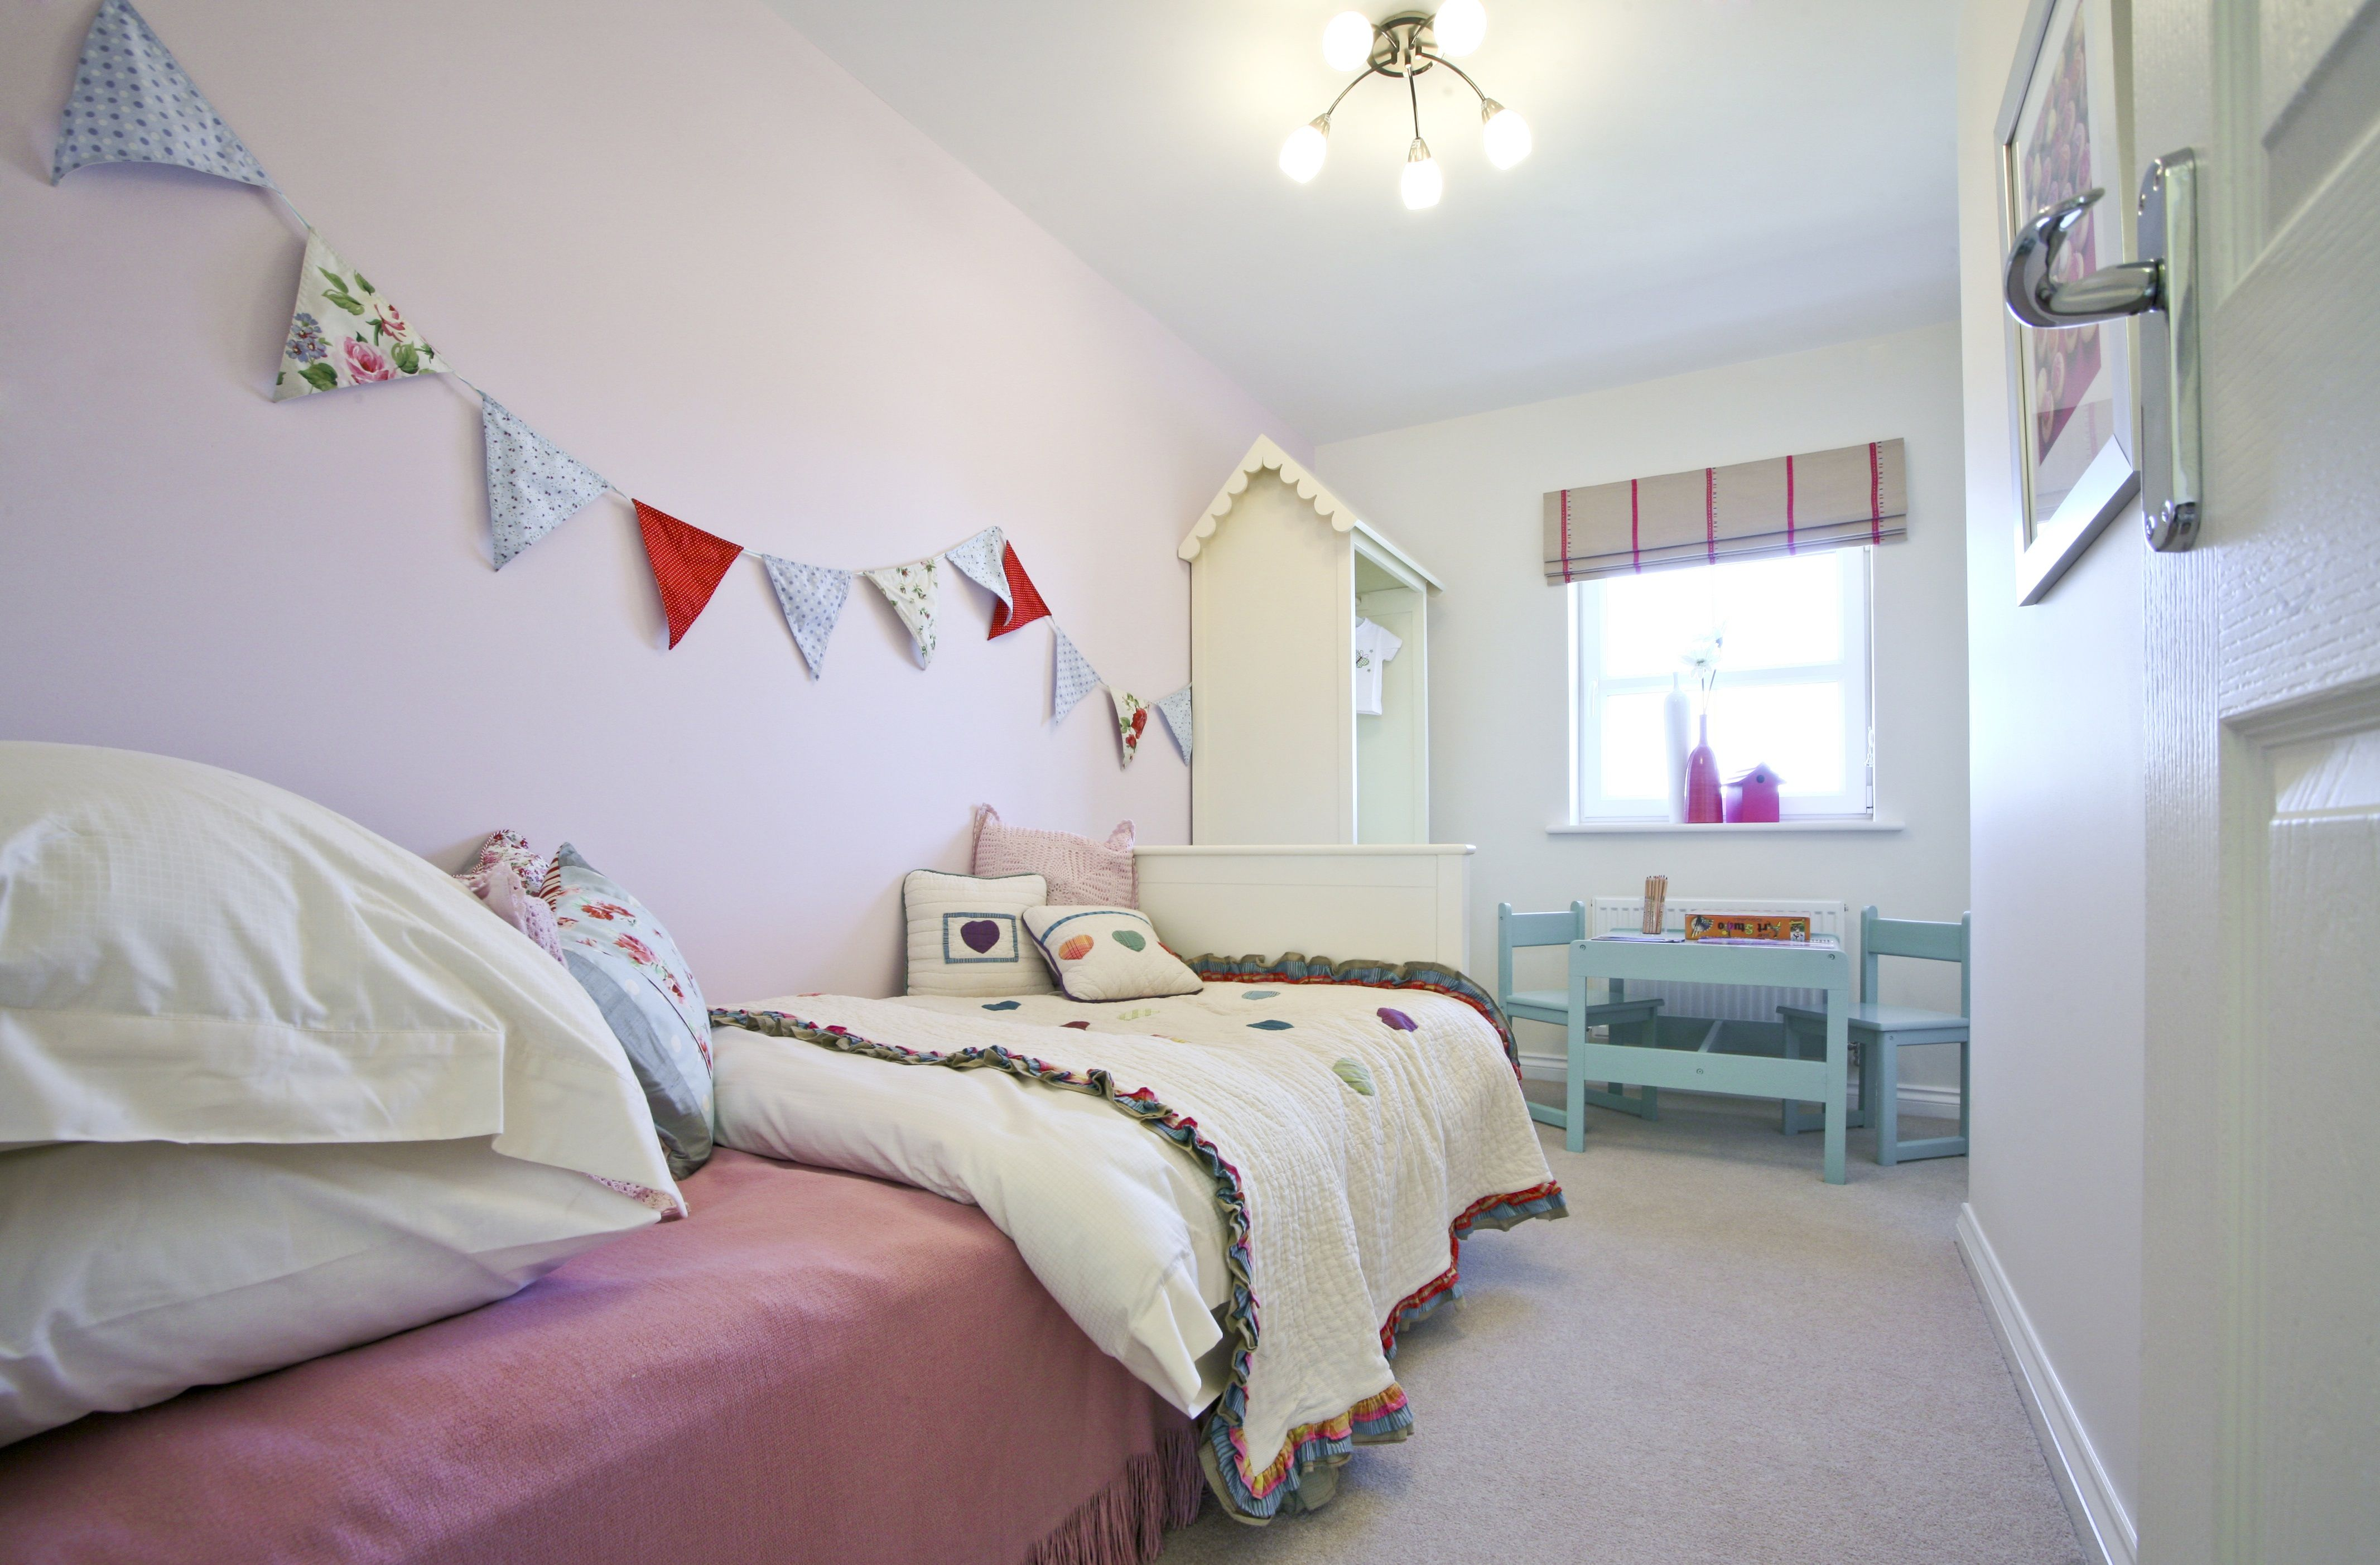 Baby crib for sale redditch - This Pretty Pastel Room Is Ideally Suited To Little Ones Looking For A Fun Space To